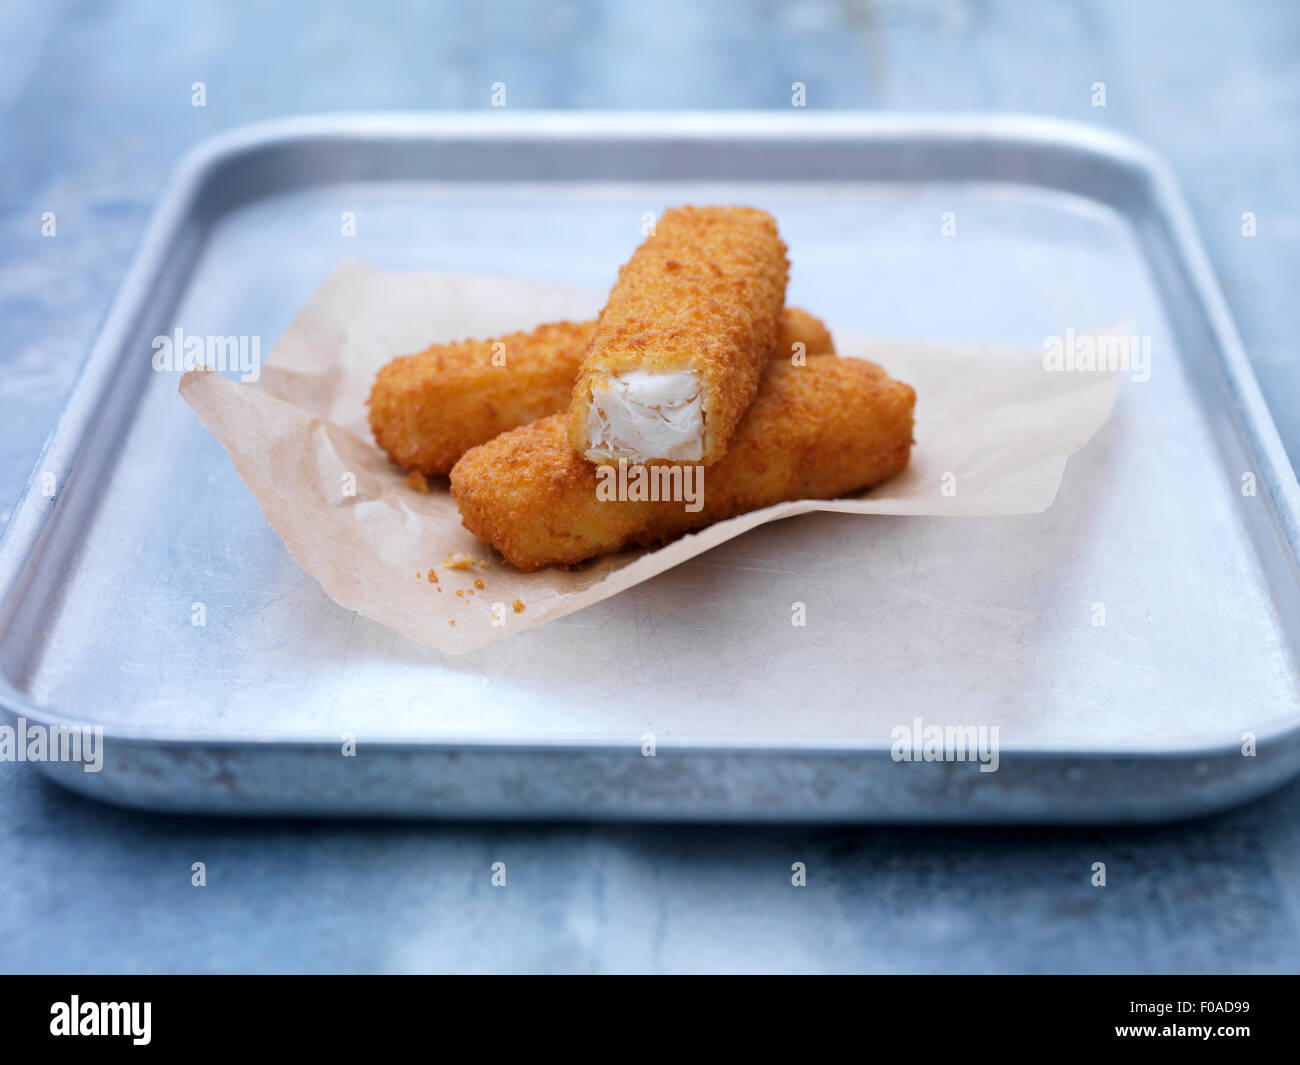 Baking tin with fried chunky breaded fish fingers on steel table - Stock Image